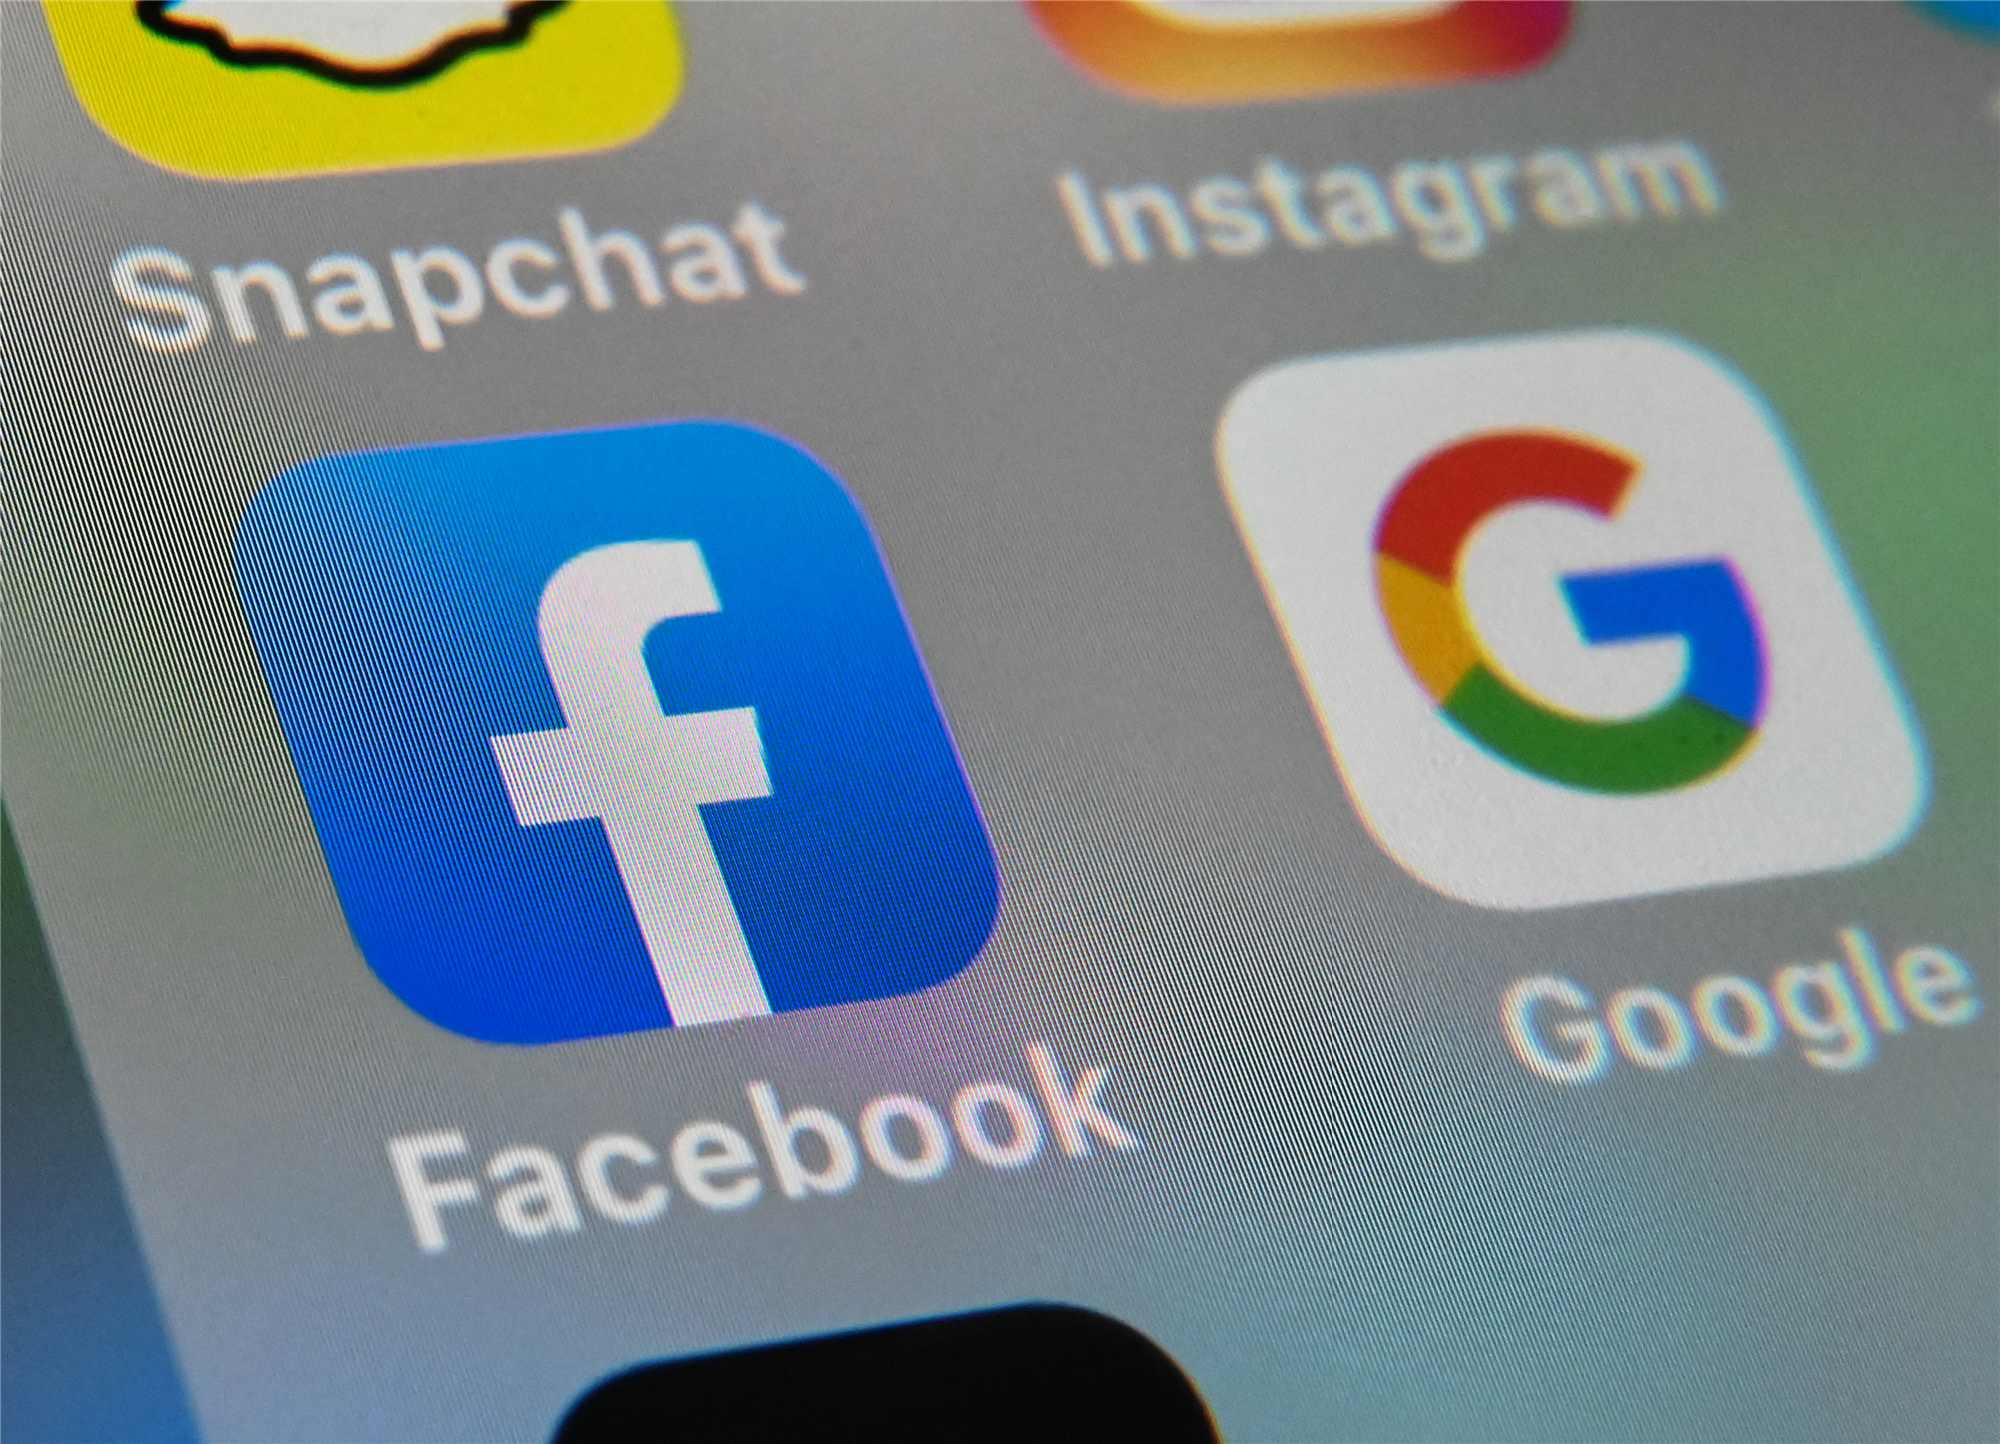 Facebook says it can locate users who opt out of tracking